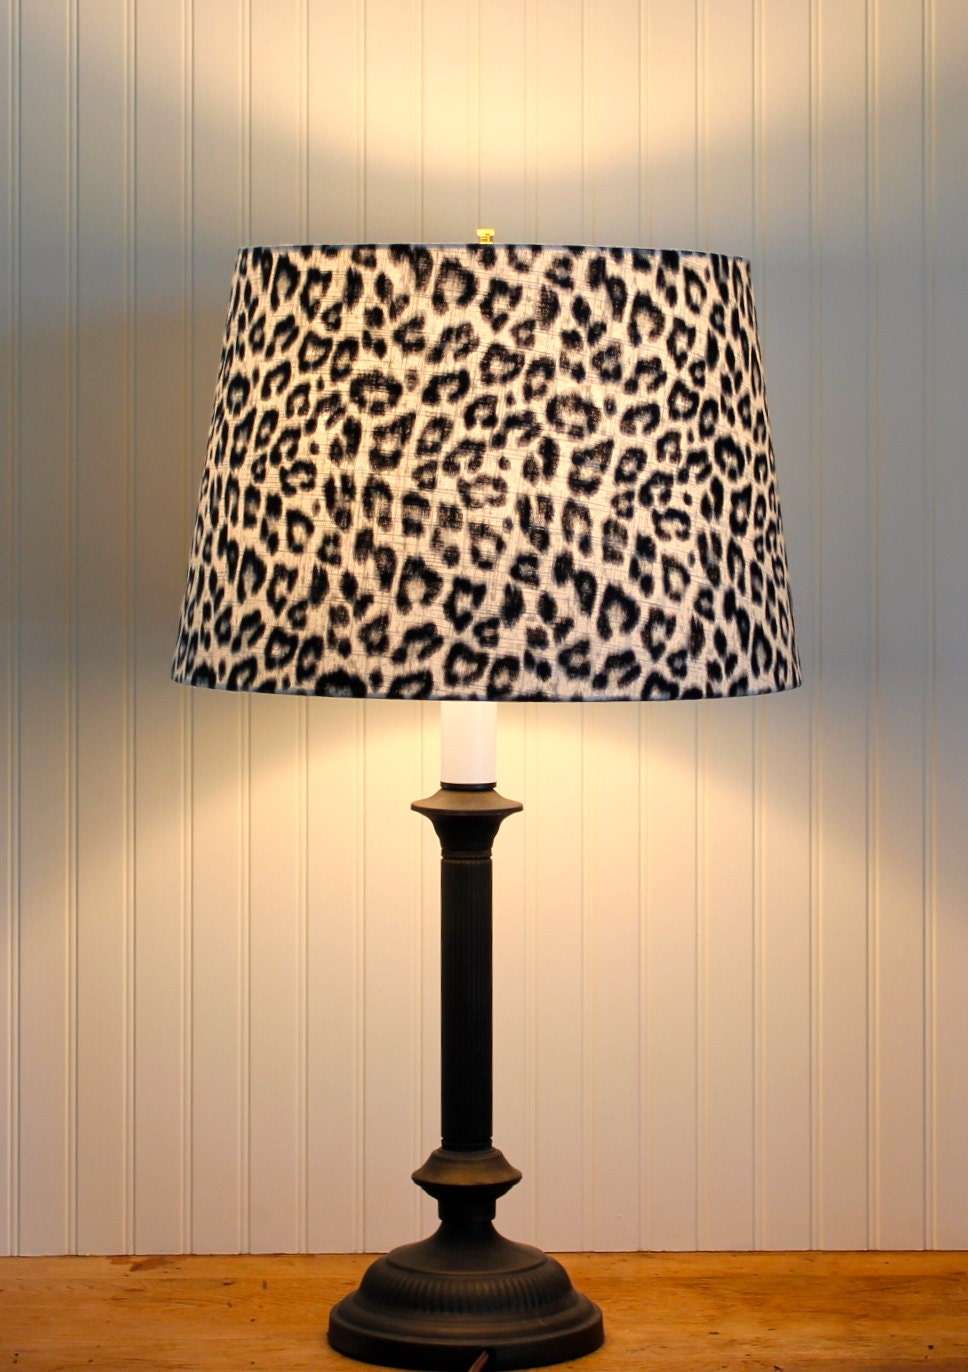 Leopard drum shade lamp shade pendant lampshade grey black for Floor lamp with leopard shade